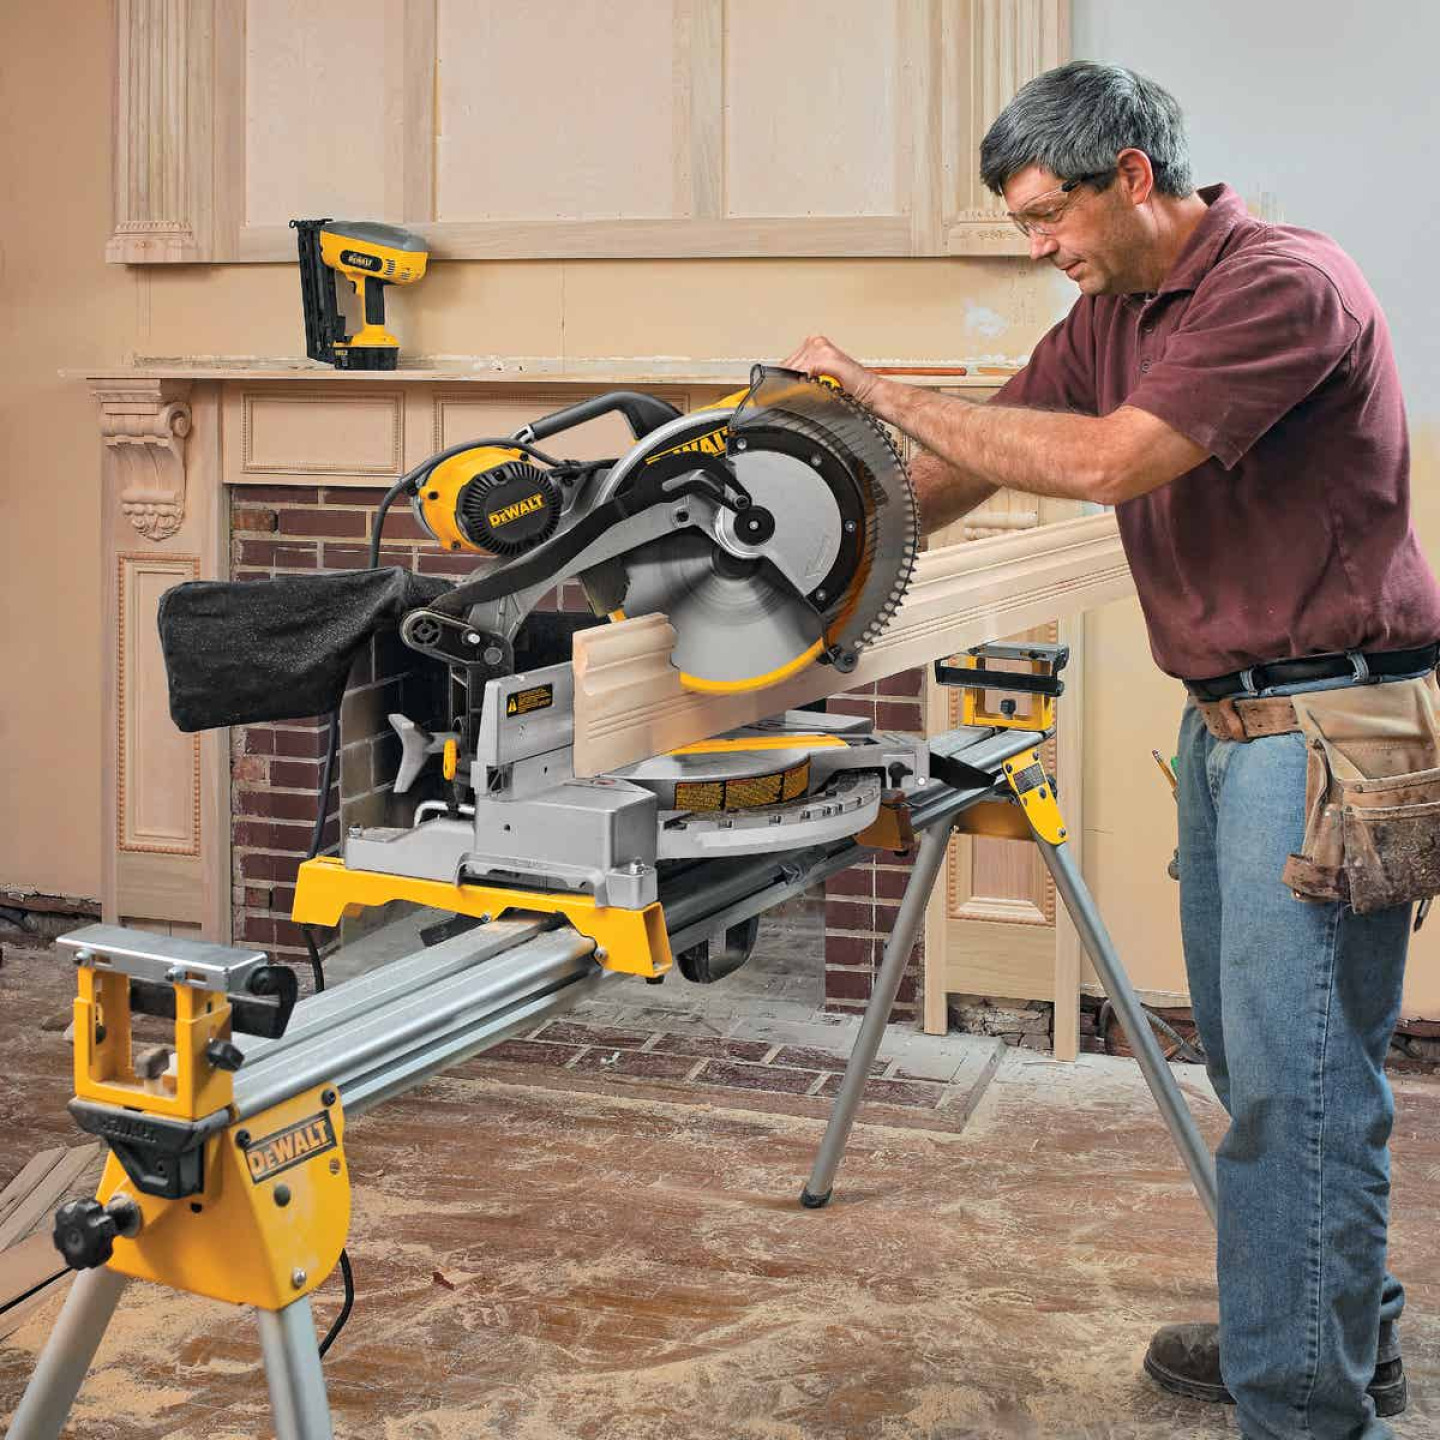 DeWalt 12 In. 15-Amp Dual-Bevel Compound Miter Saw Image 3